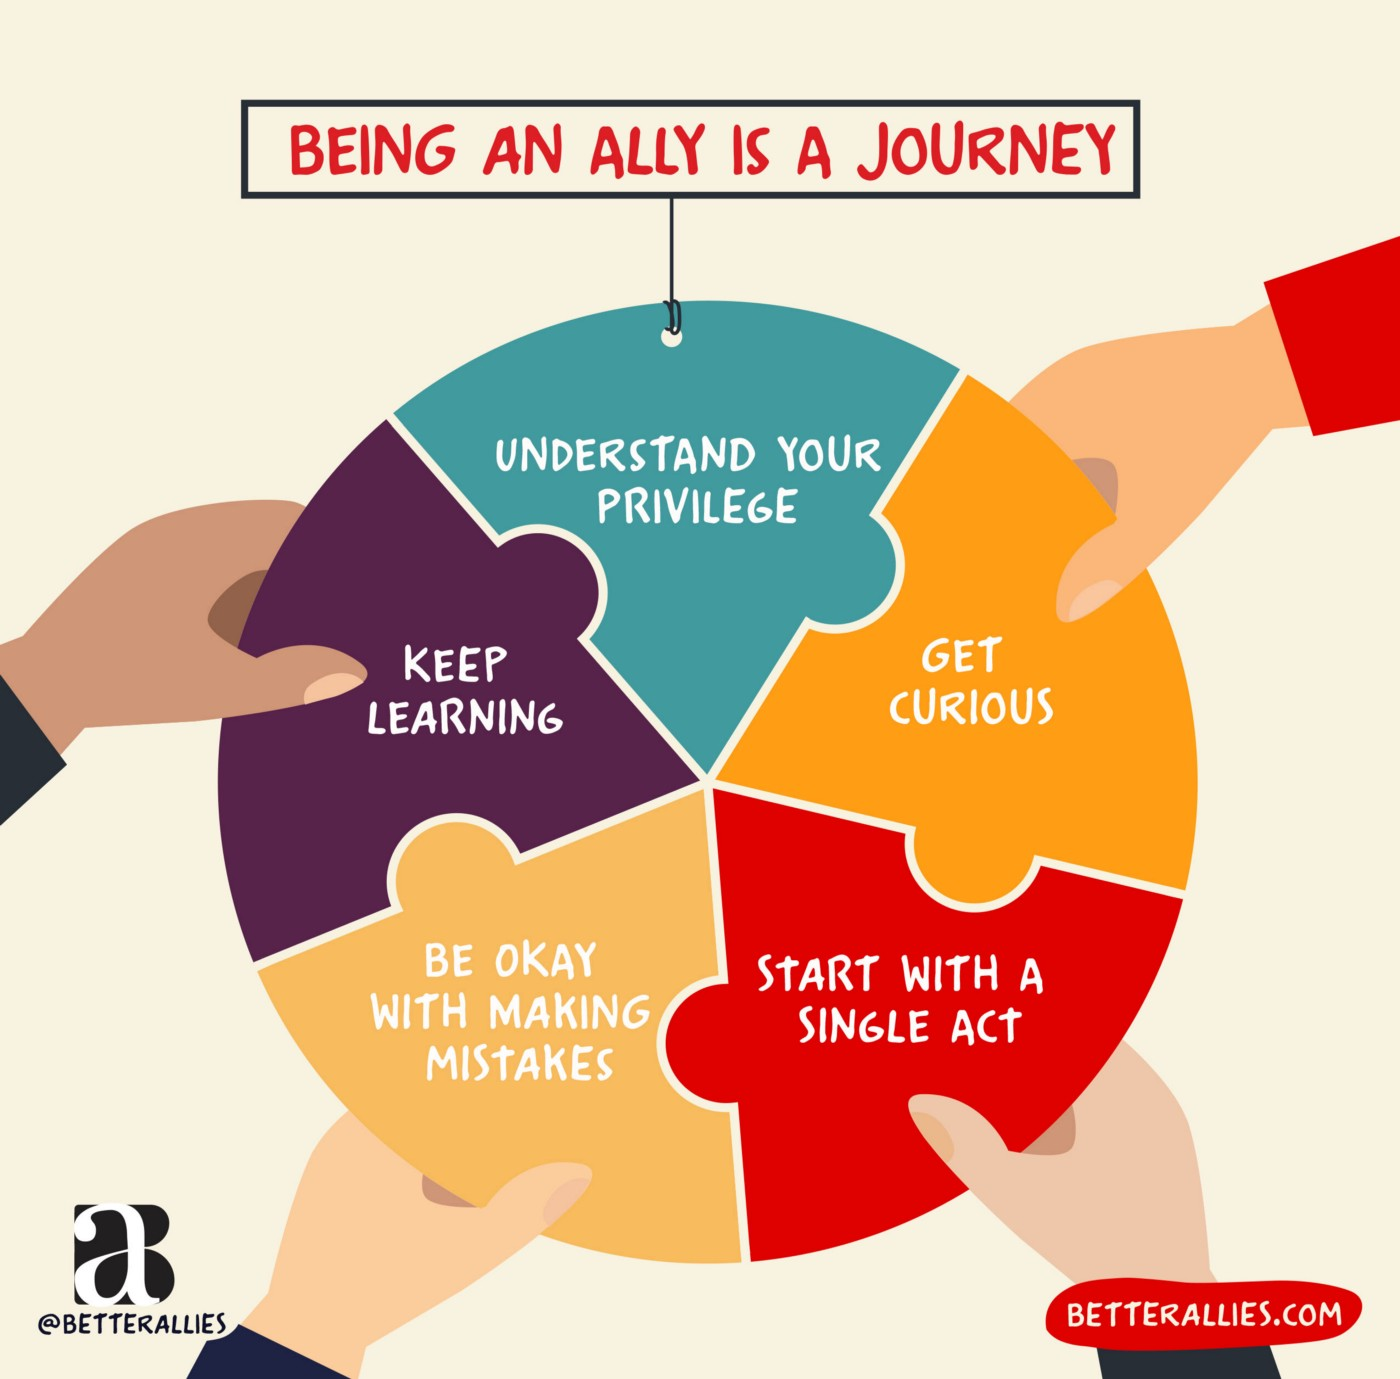 Being an ally is a journey—circle with hands holding up 5 ideas to start